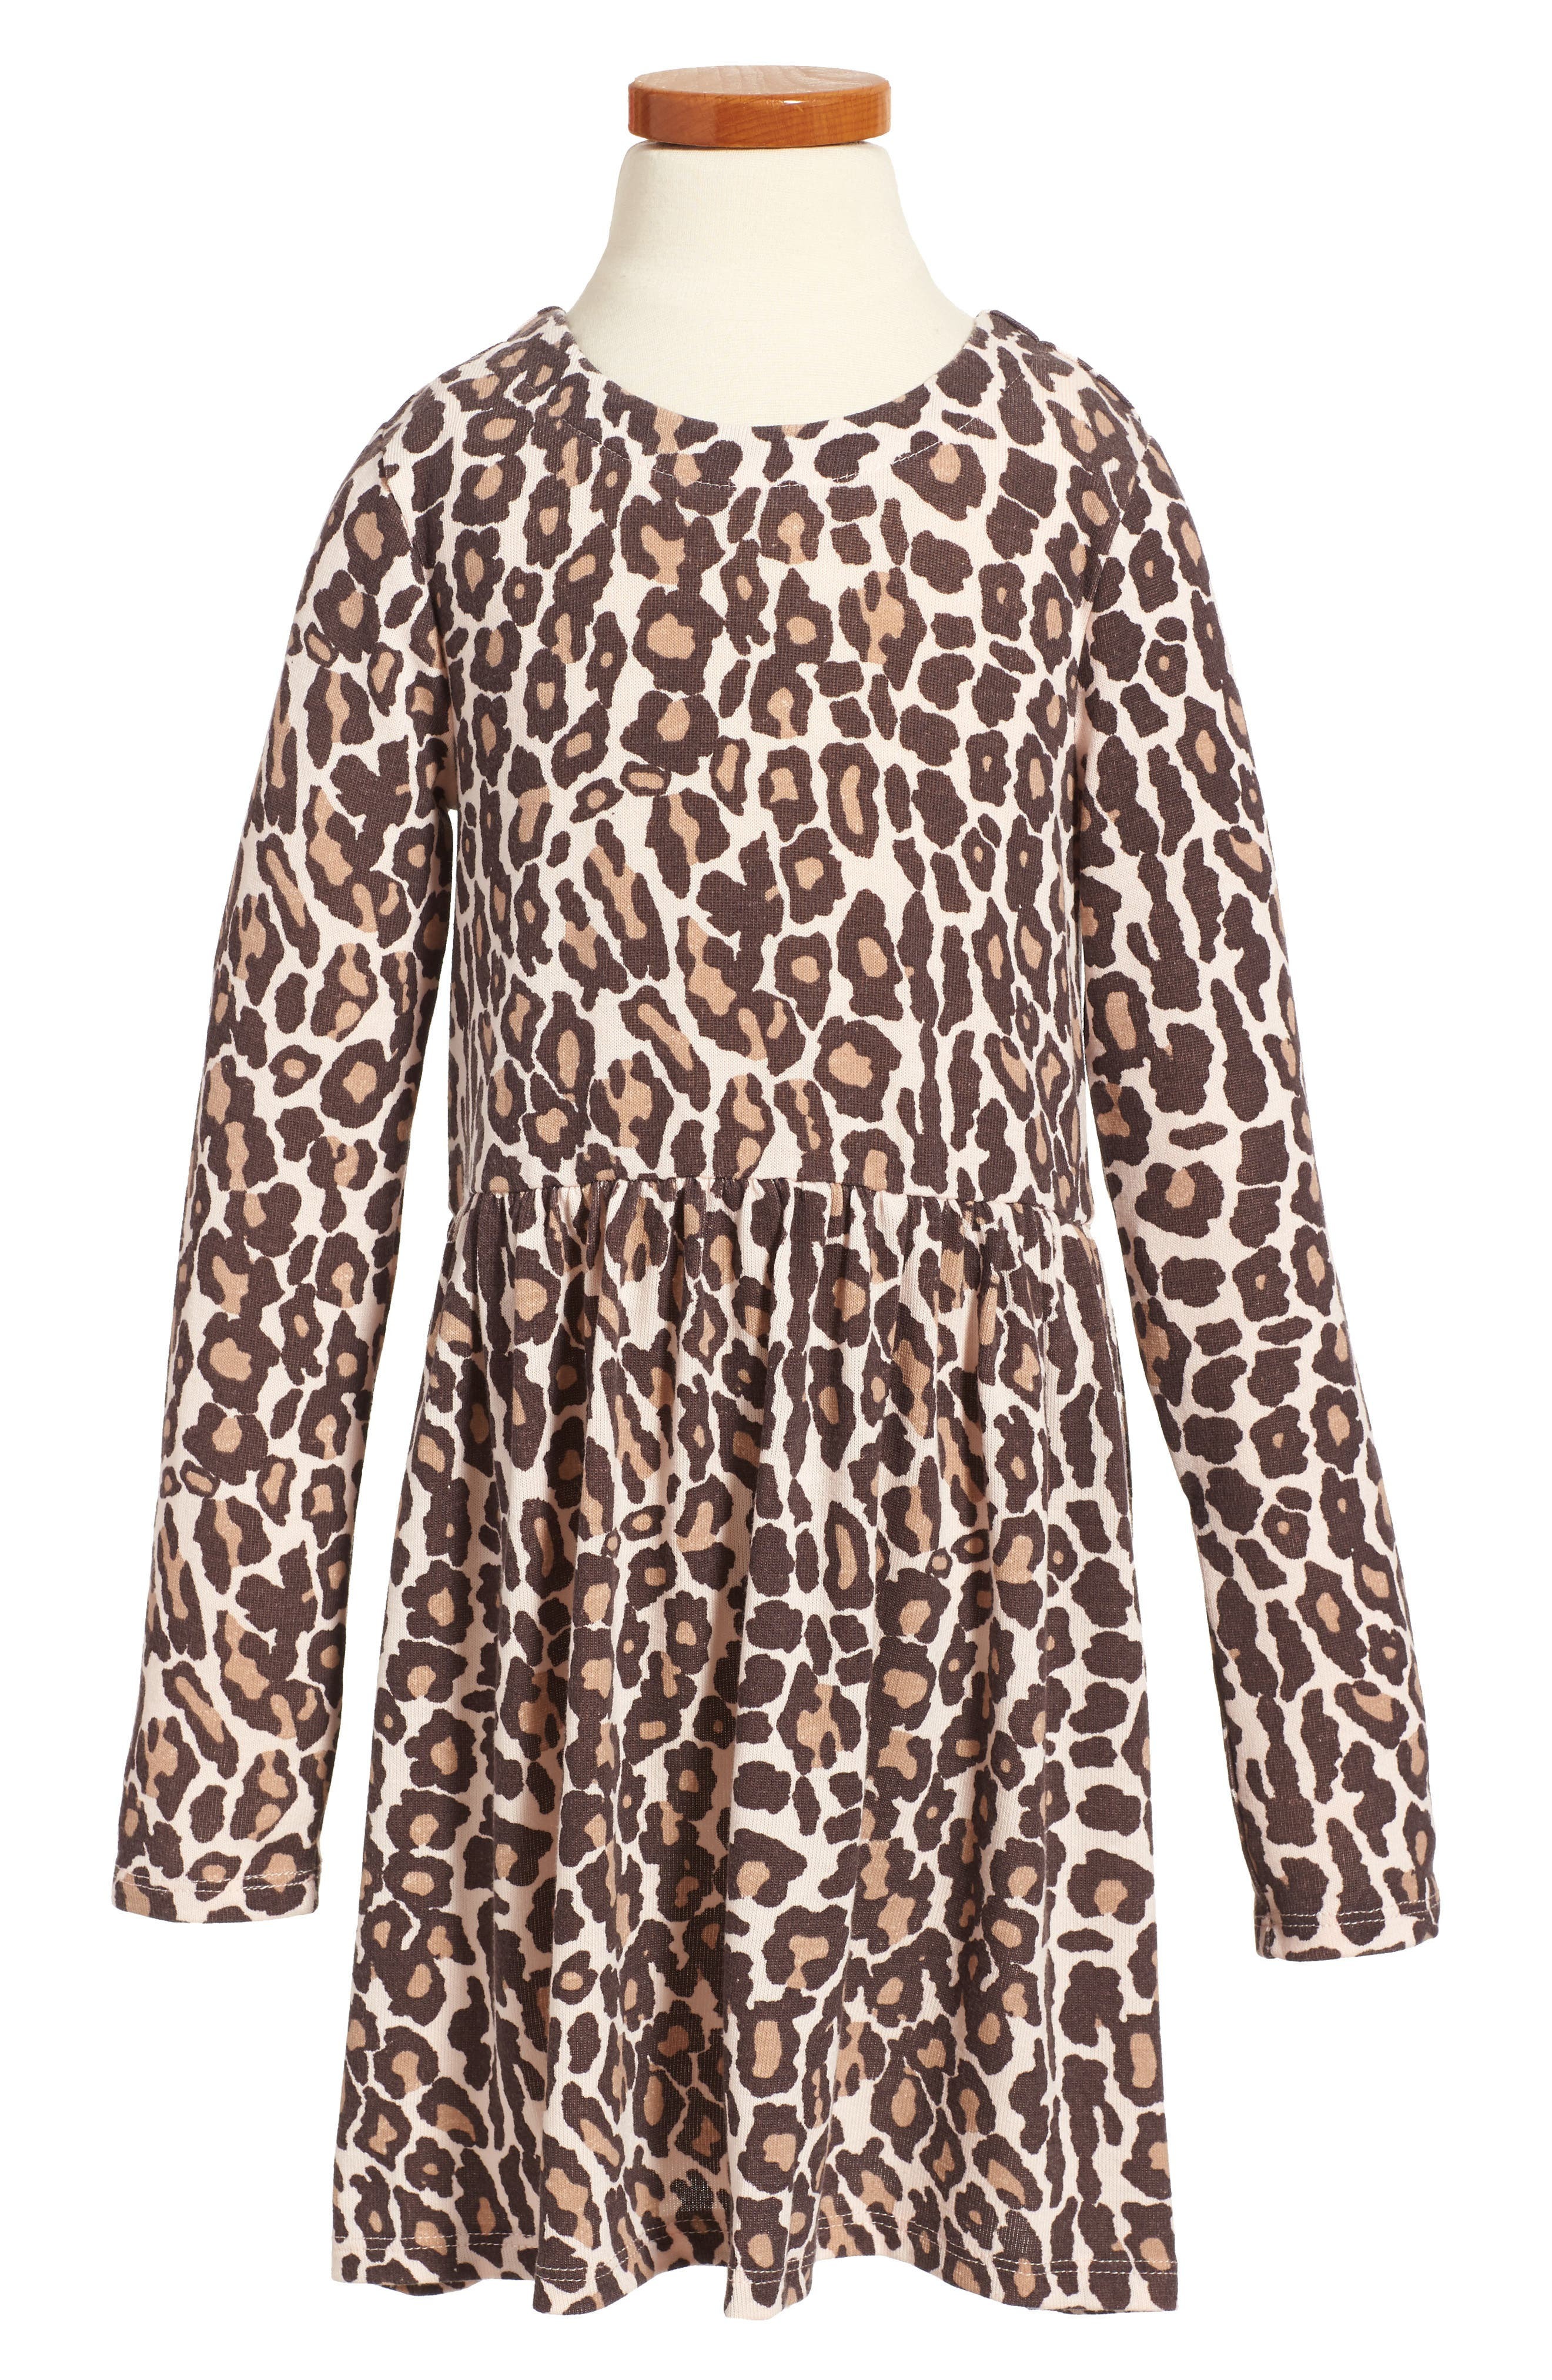 Splendid Animal Print Loose Knit Dress (Toddler Girls & Little Girls)